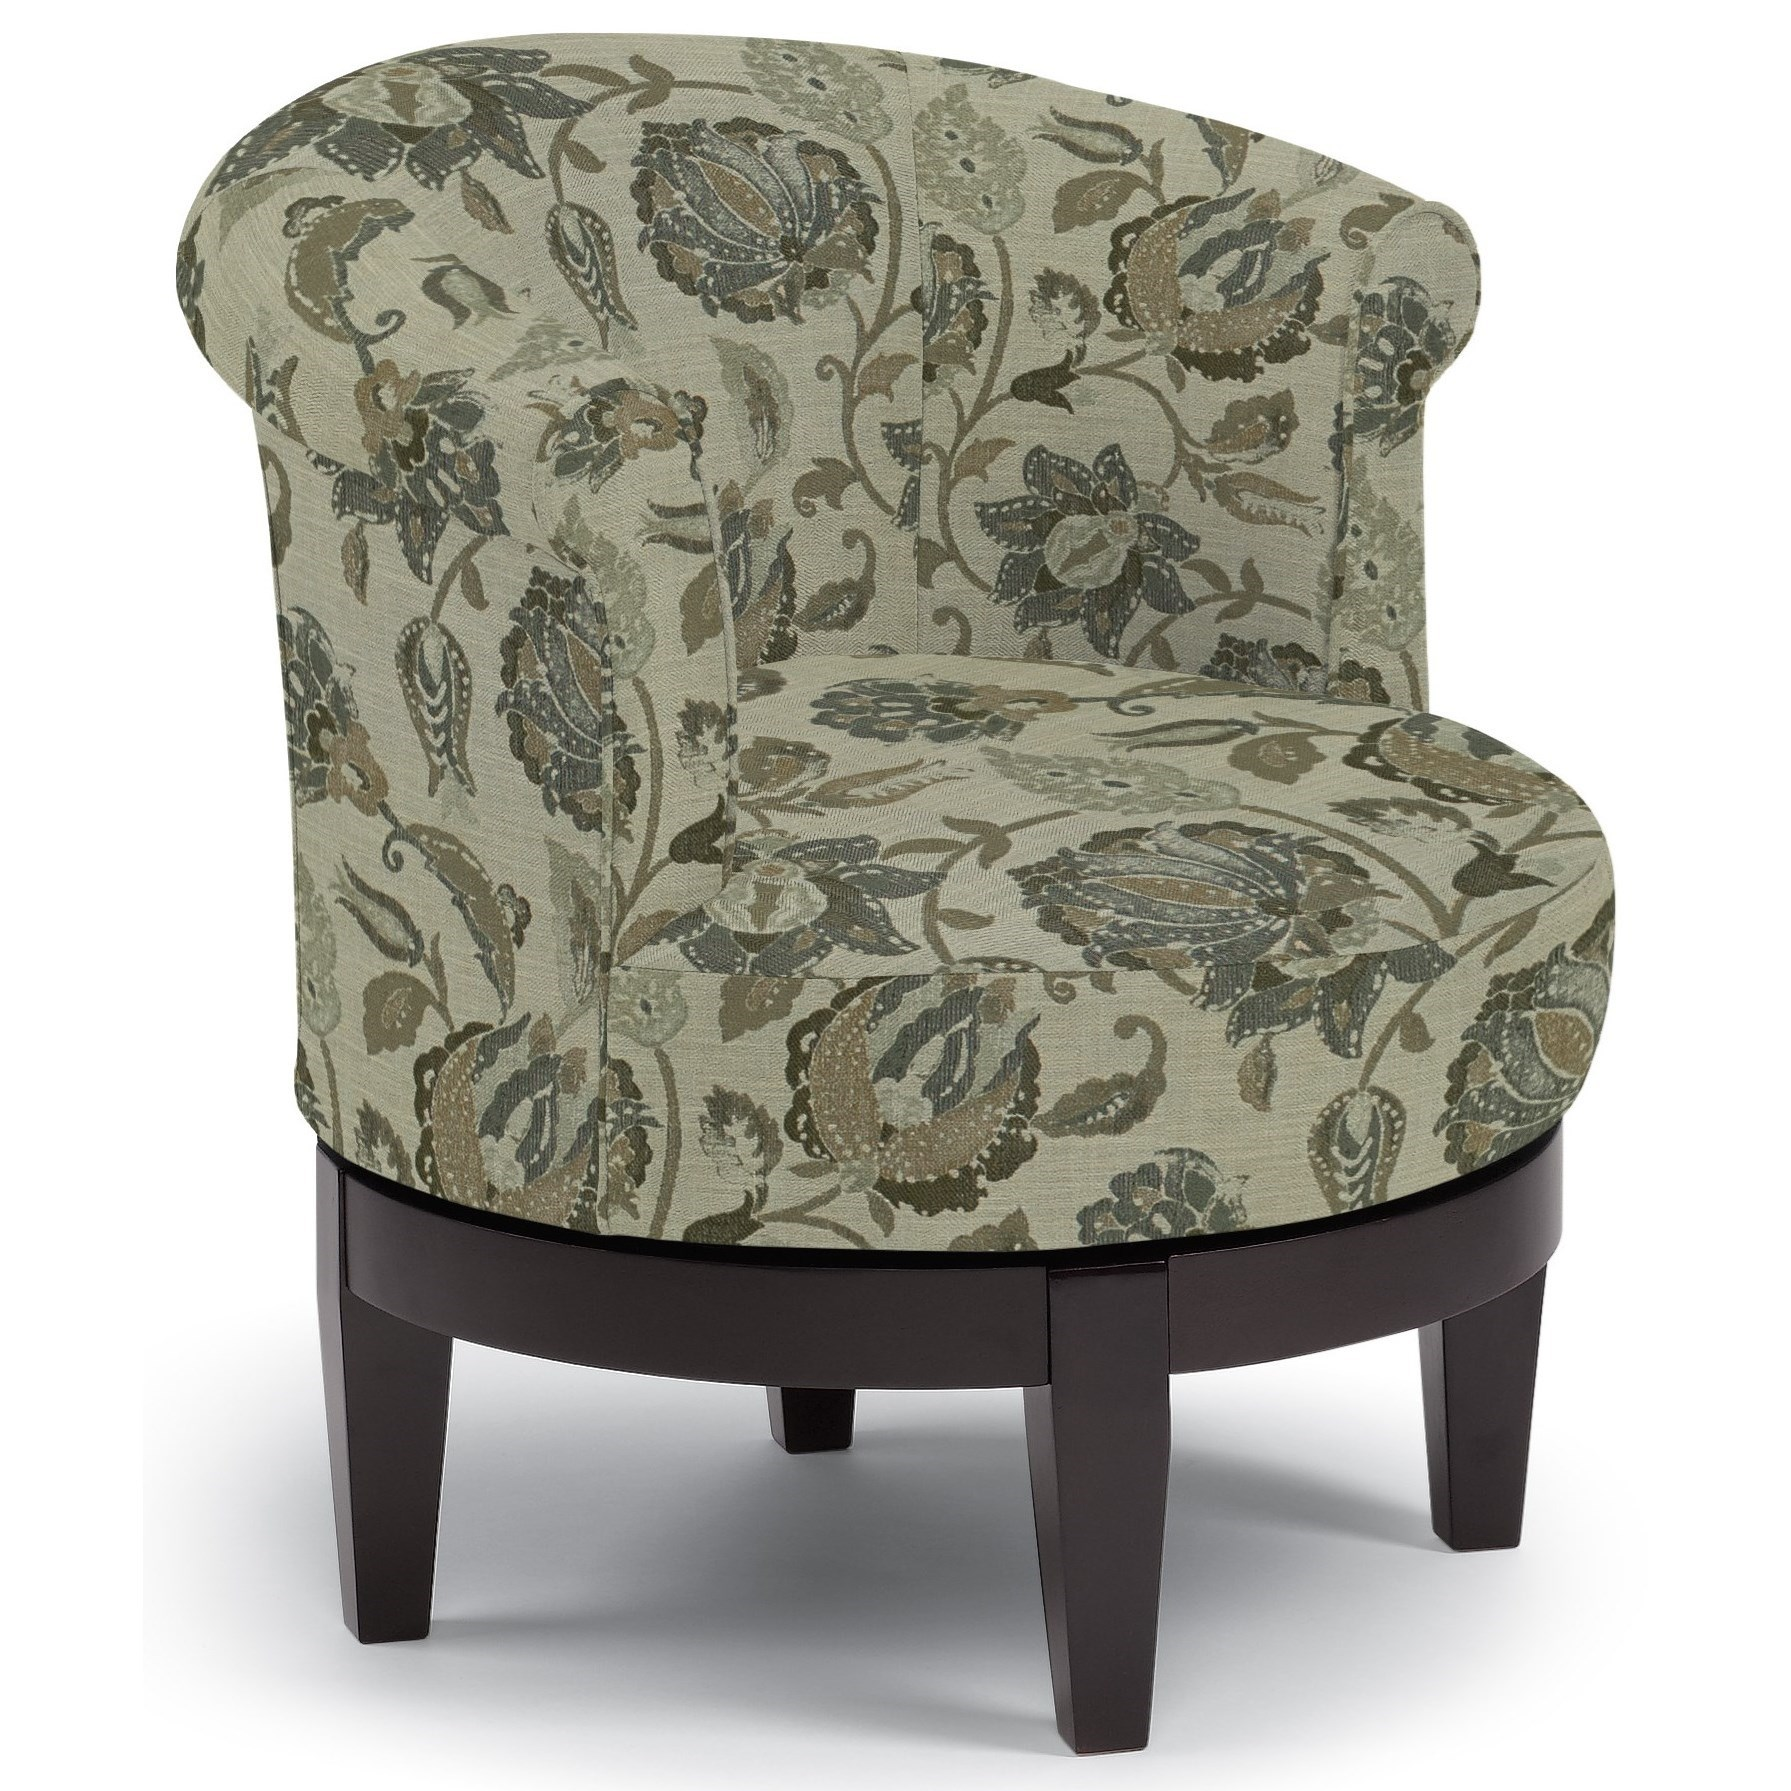 Chairs - Swivel Barrel Attica Swivel Chair by Best Home Furnishings at Rife's Home Furniture